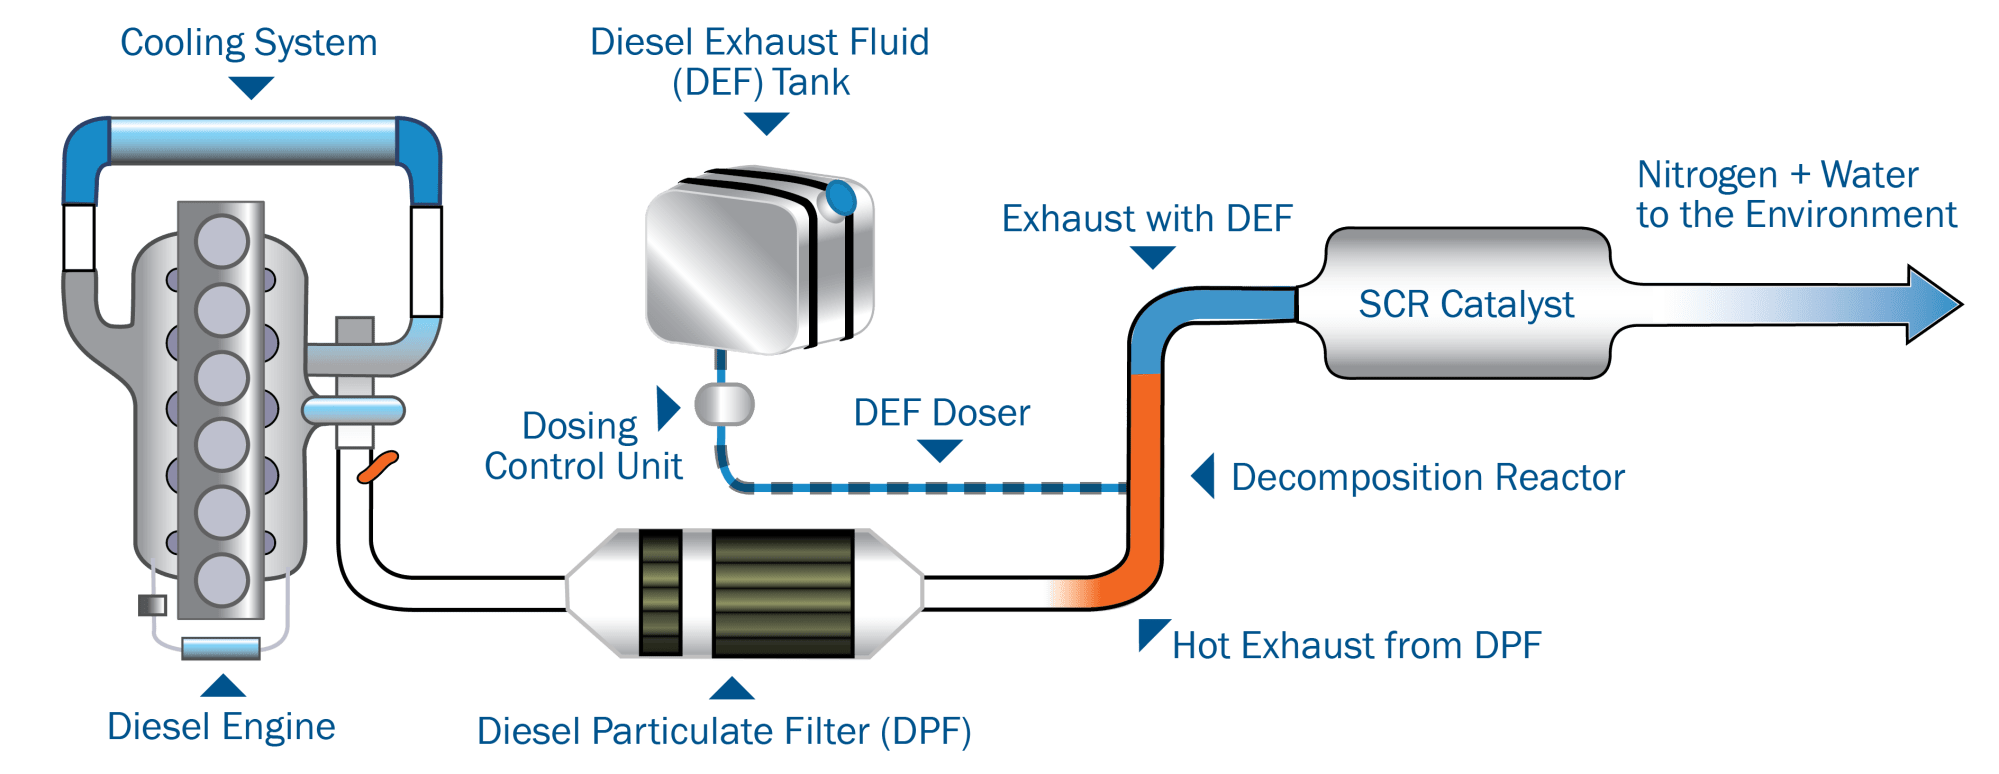 hight resolution of in the scr system nitrous oxide gas is injected with diesel exhaust fluid def which reacts with the catalyst that reaction breaks the nitrogen oxide